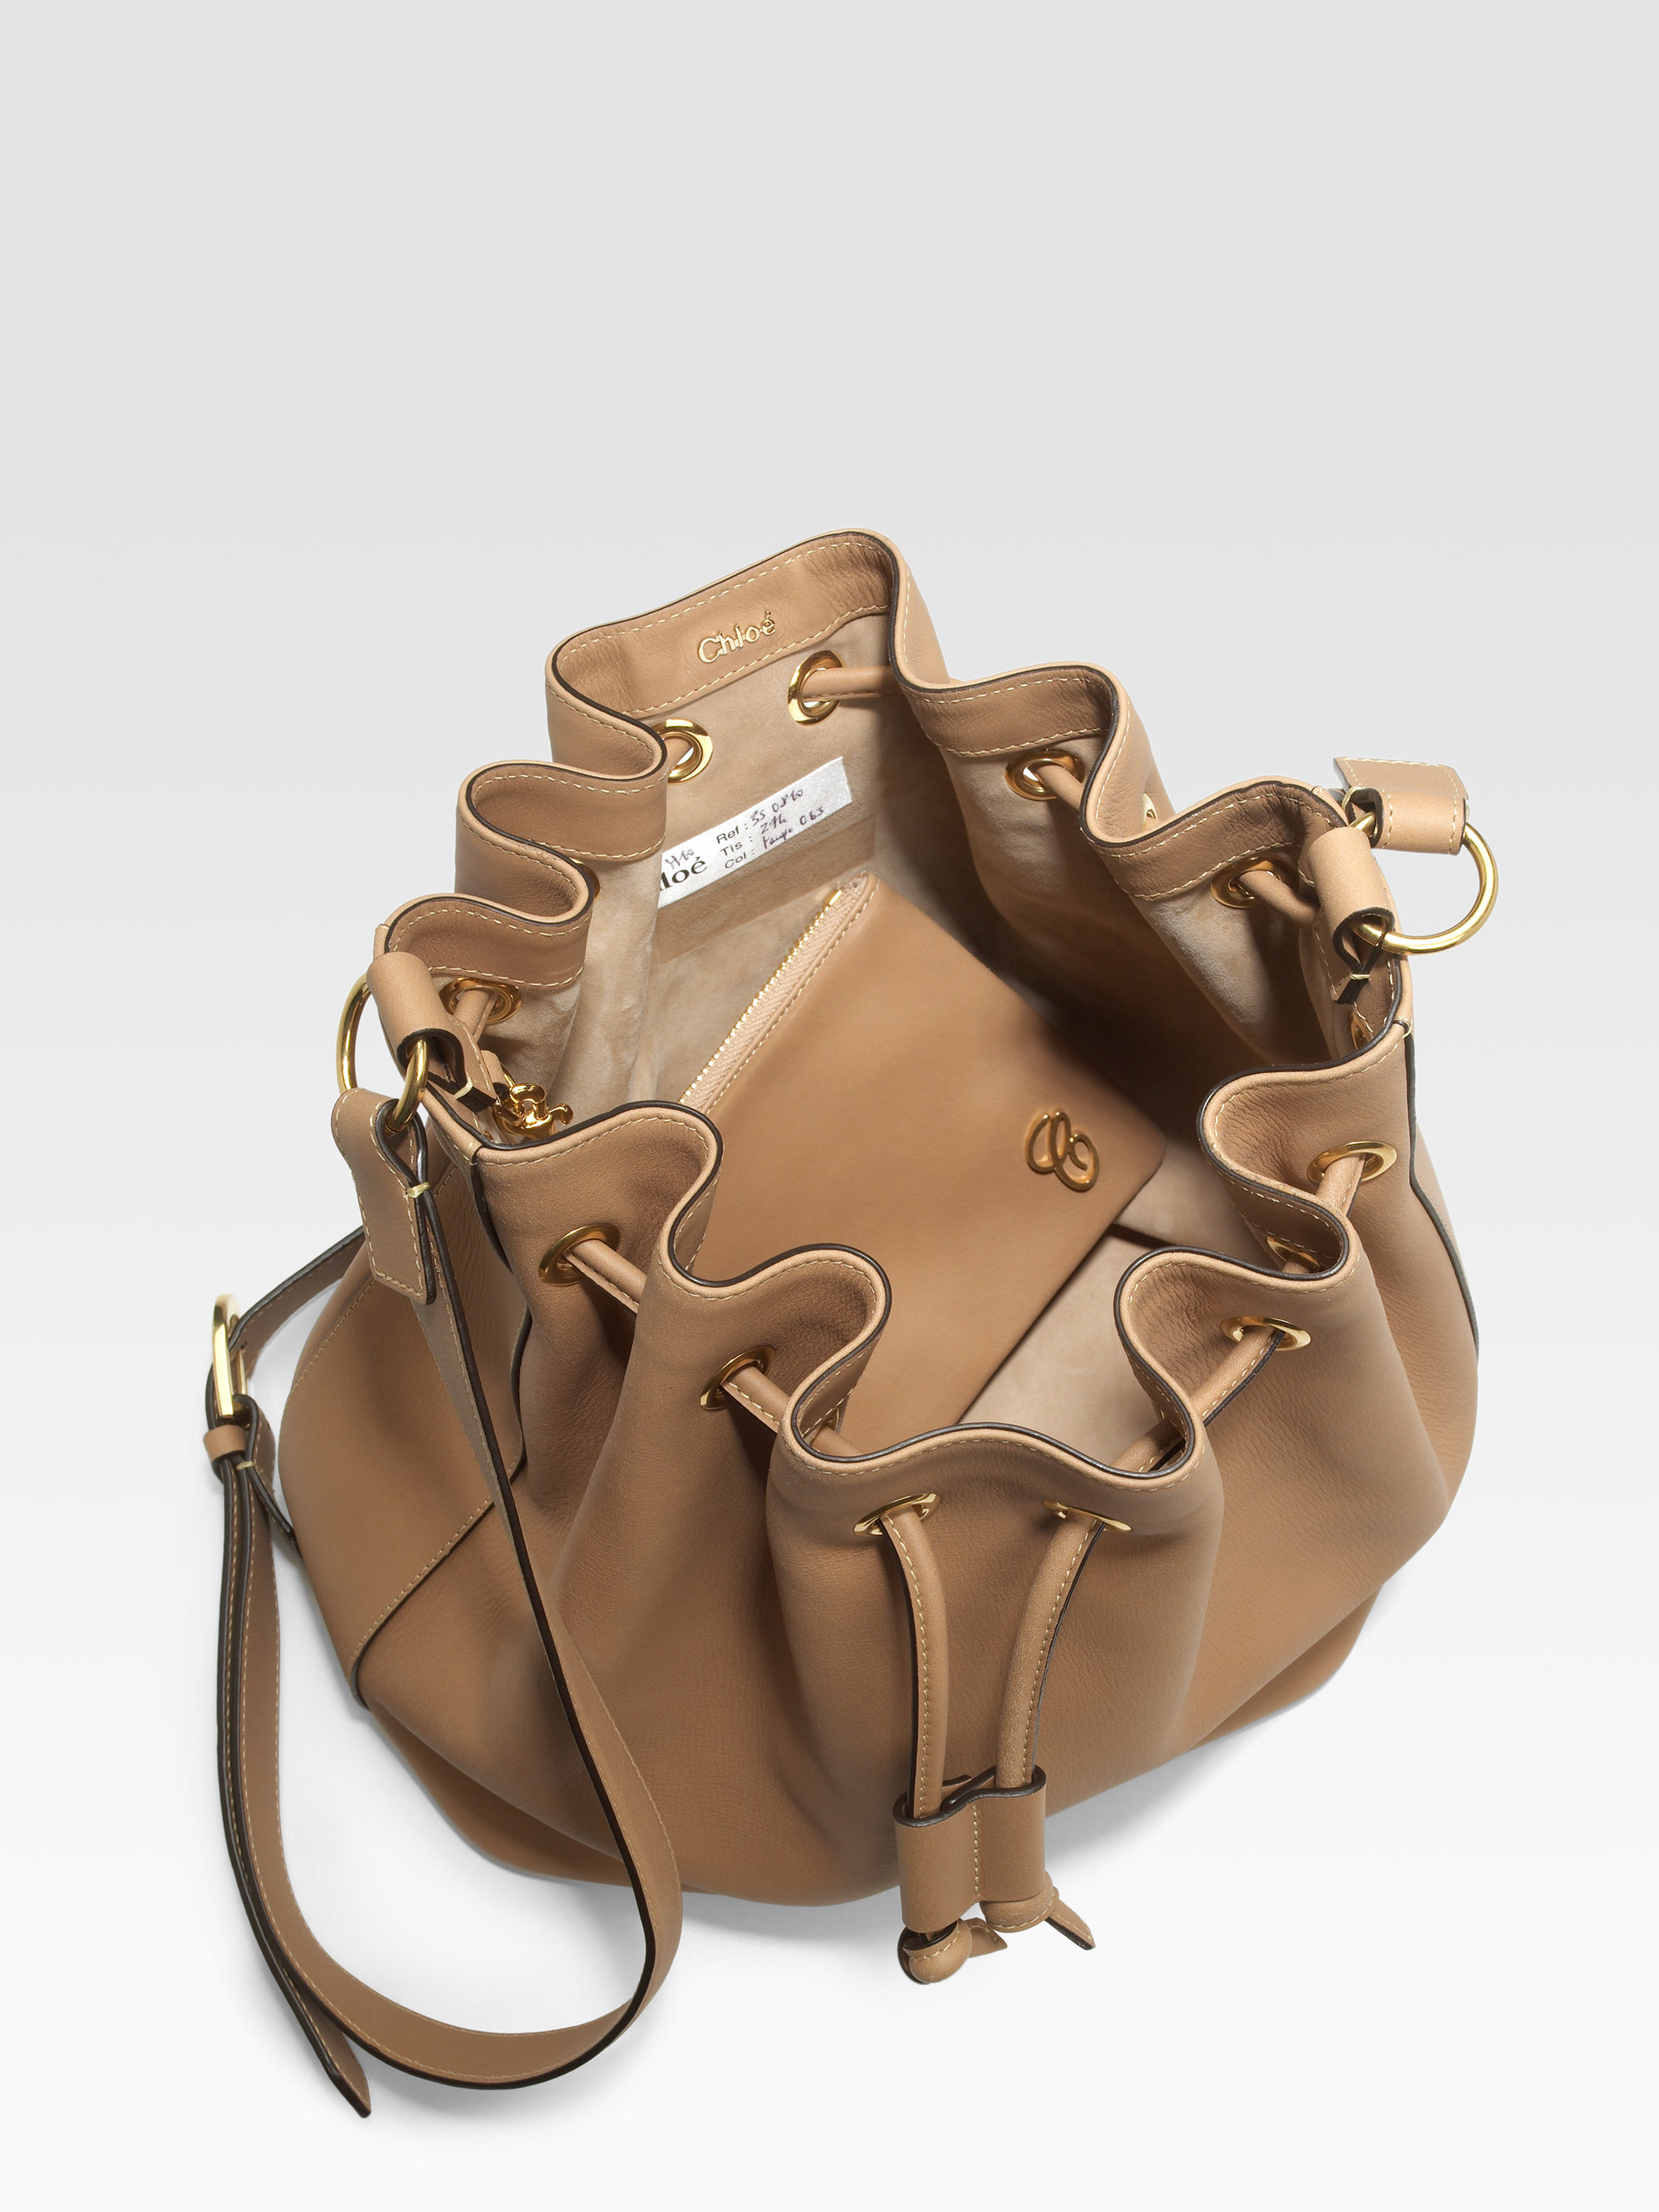 Chlo¨¦ Aurore Bucket Bag in Brown (black) | Lyst